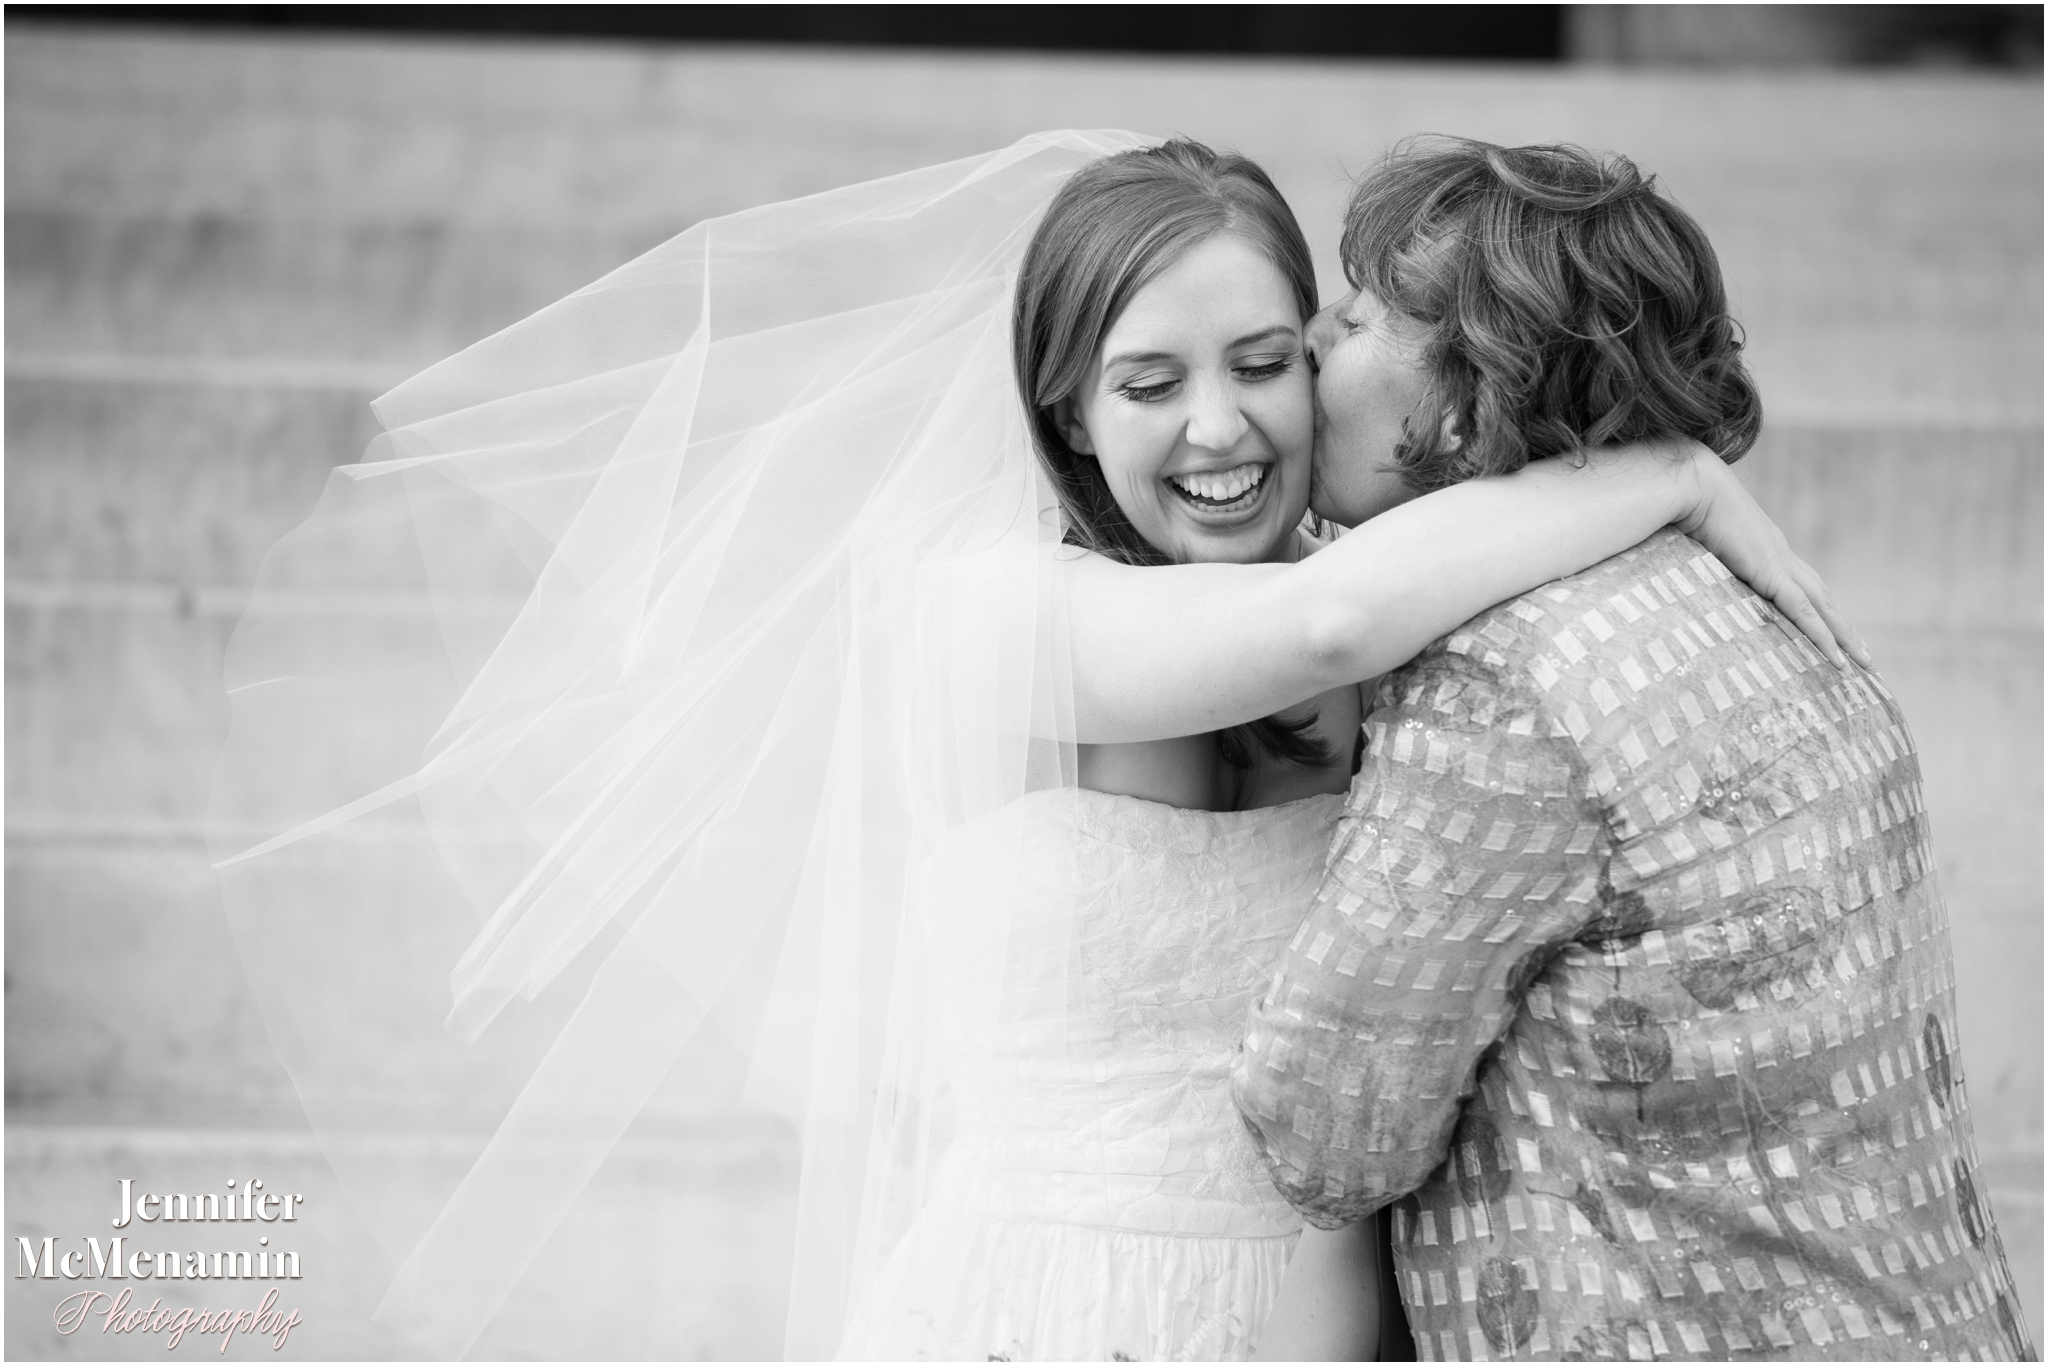 0046-WebbSlivnick_01710-0340_JenniferMcMenaminPhotography_George-Peabody-Library-wedding_Baltimore-wedding-photography_Baltimore-wedding-photographer